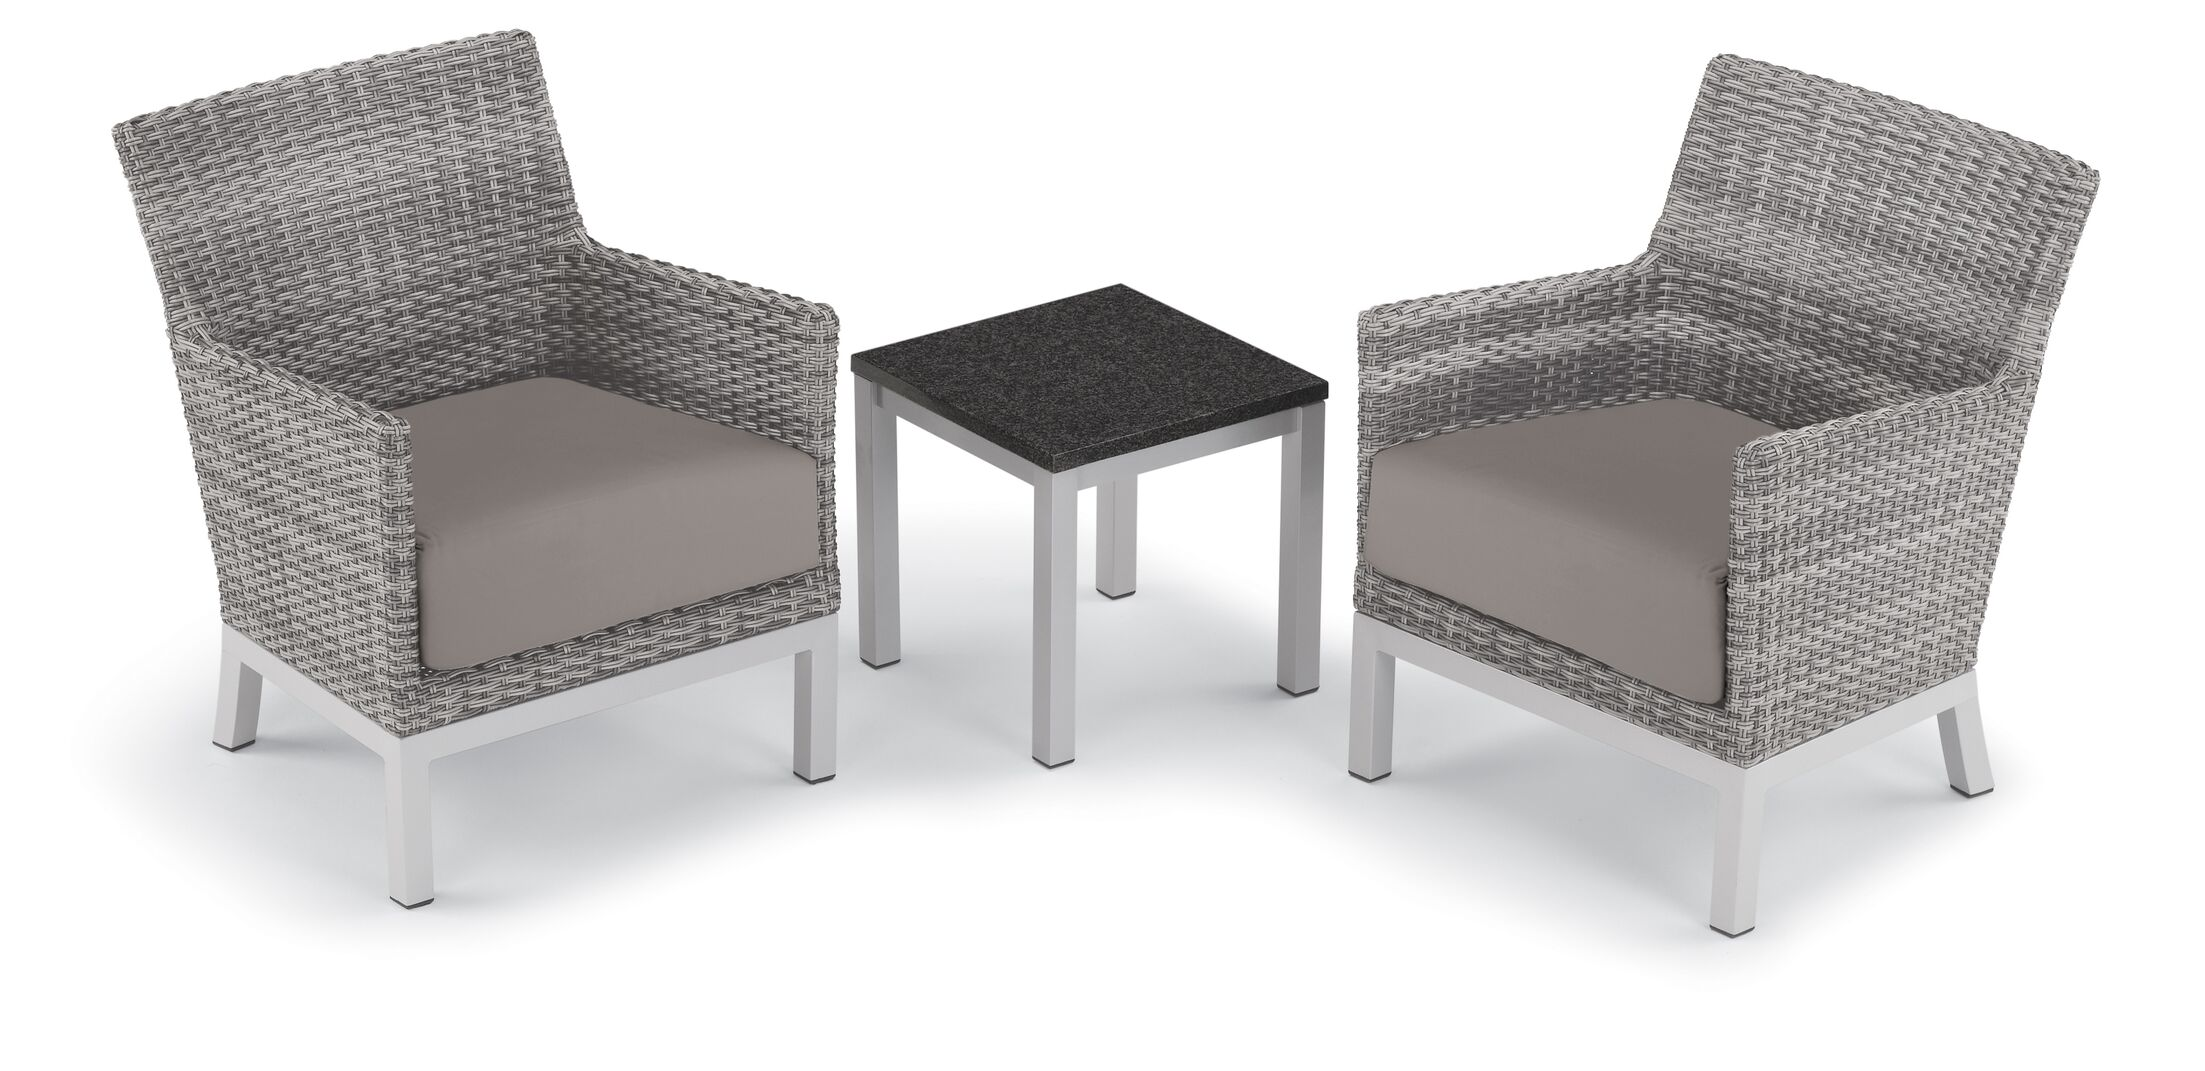 Saint-Pierre 3 Piece Seating Group with Cushions Cushion Color: Stone